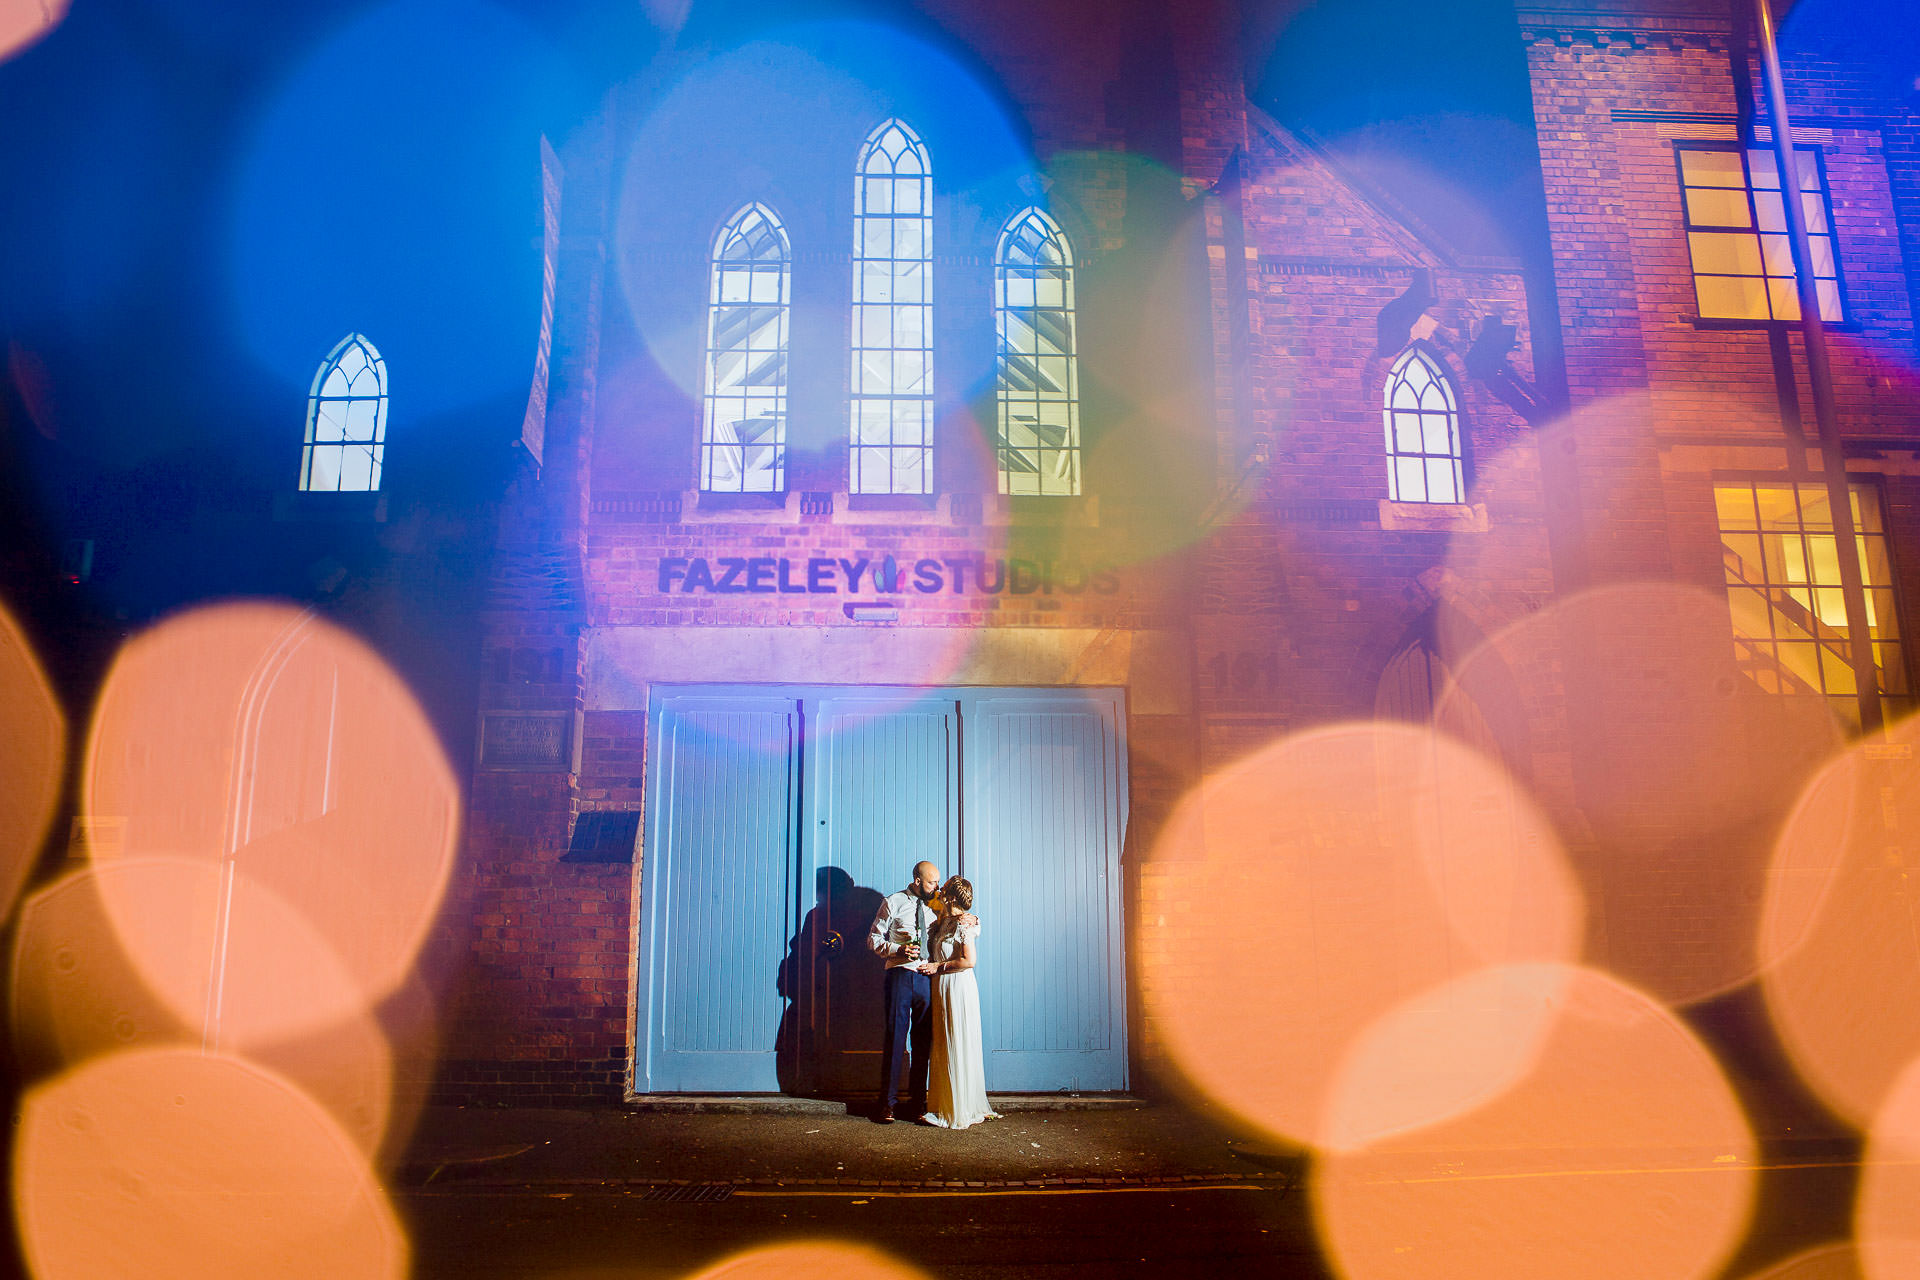 Fazeley Studios Wedding photograph of Bride and Groom standing in front of blue doors by John Charlton Photography